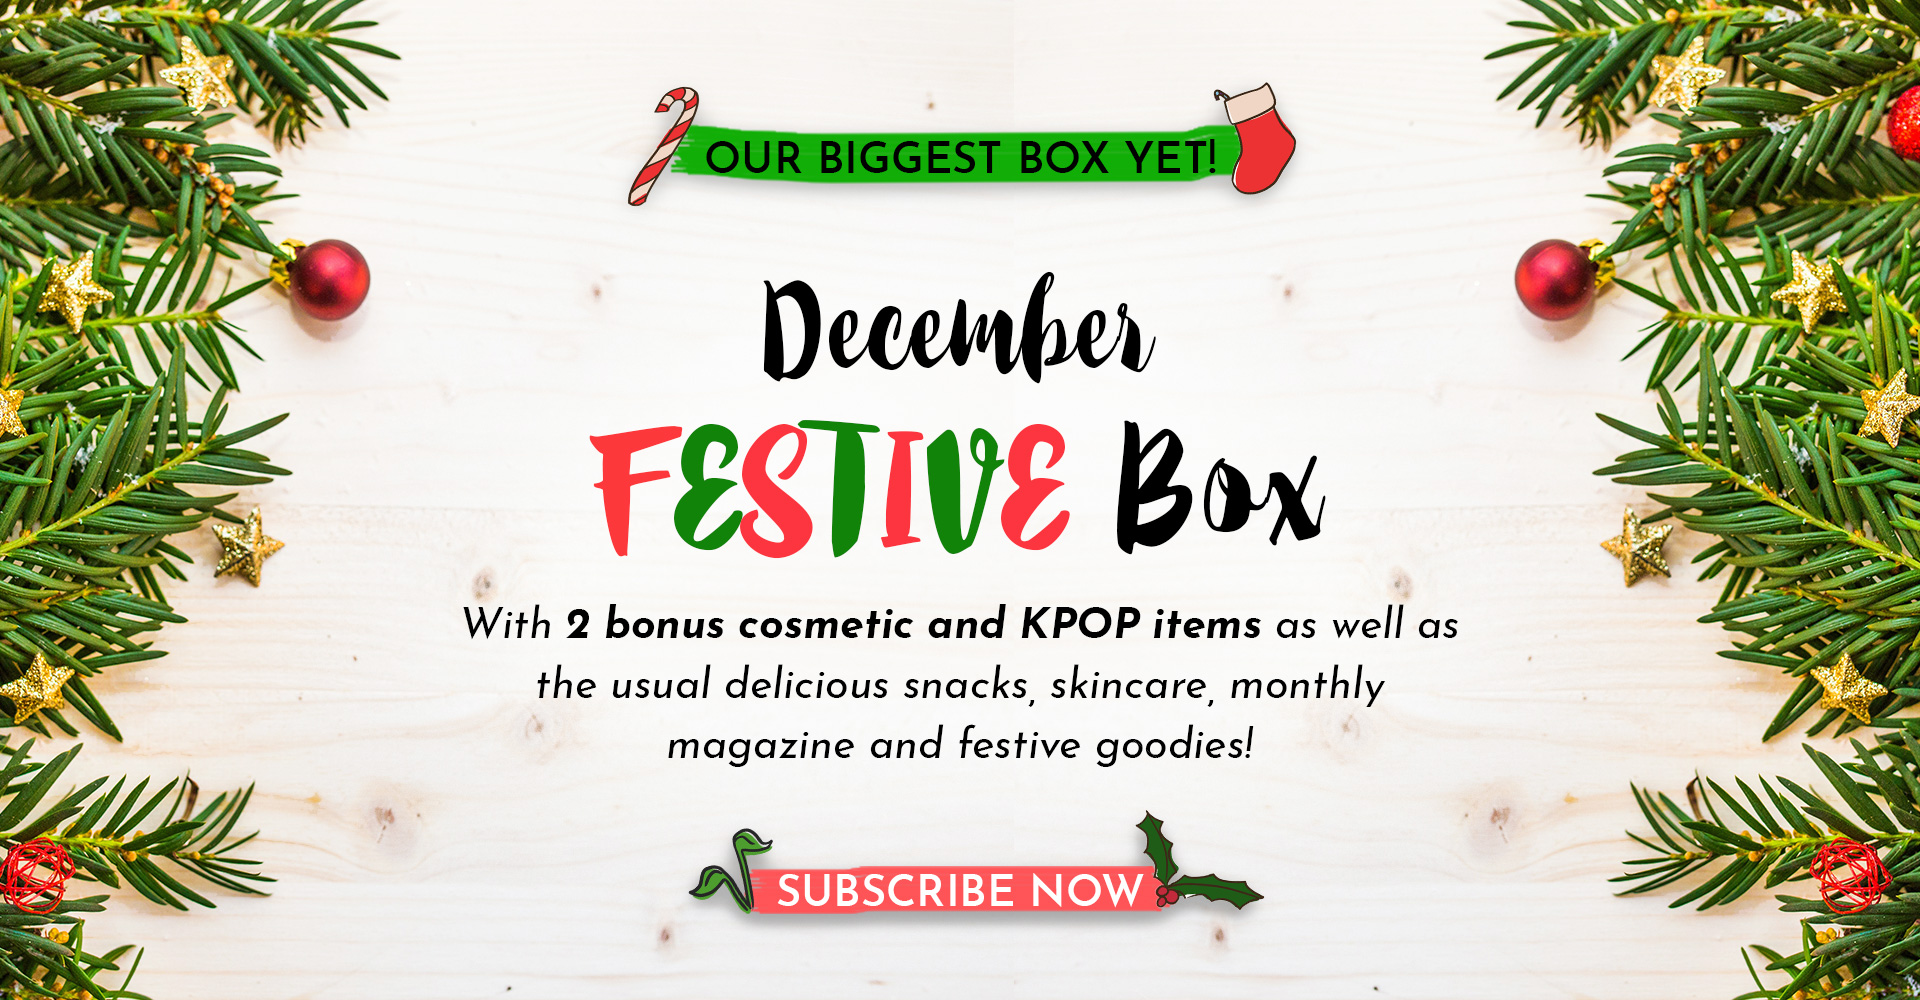 Website-Banner-December-Festive-Box-Alt-Final.jpg